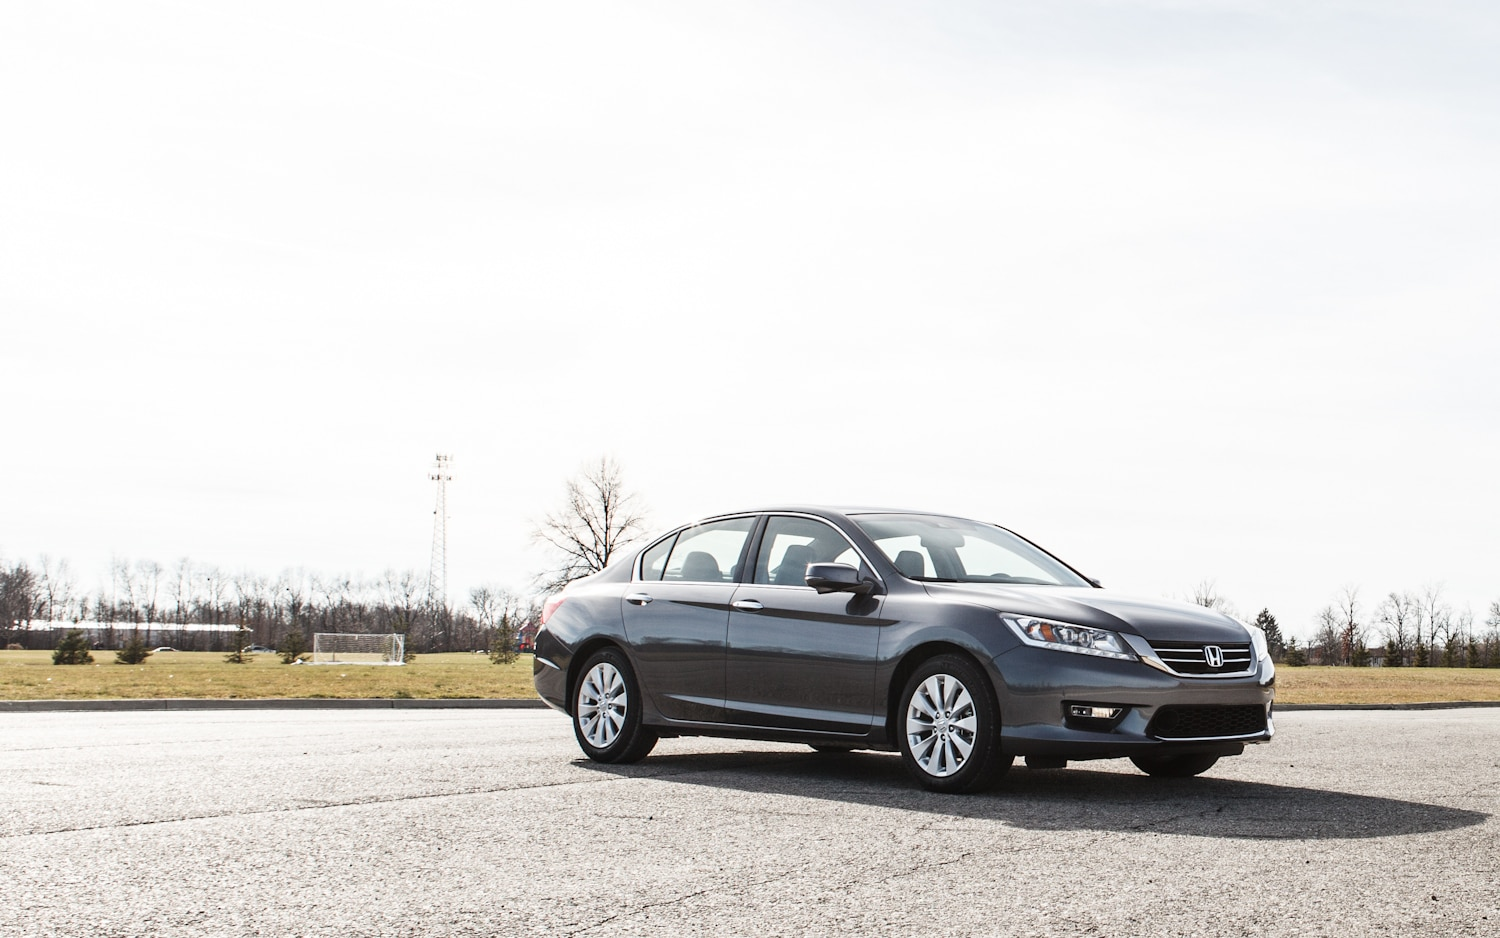 2013 Honda Accord Touring Front Right View 31